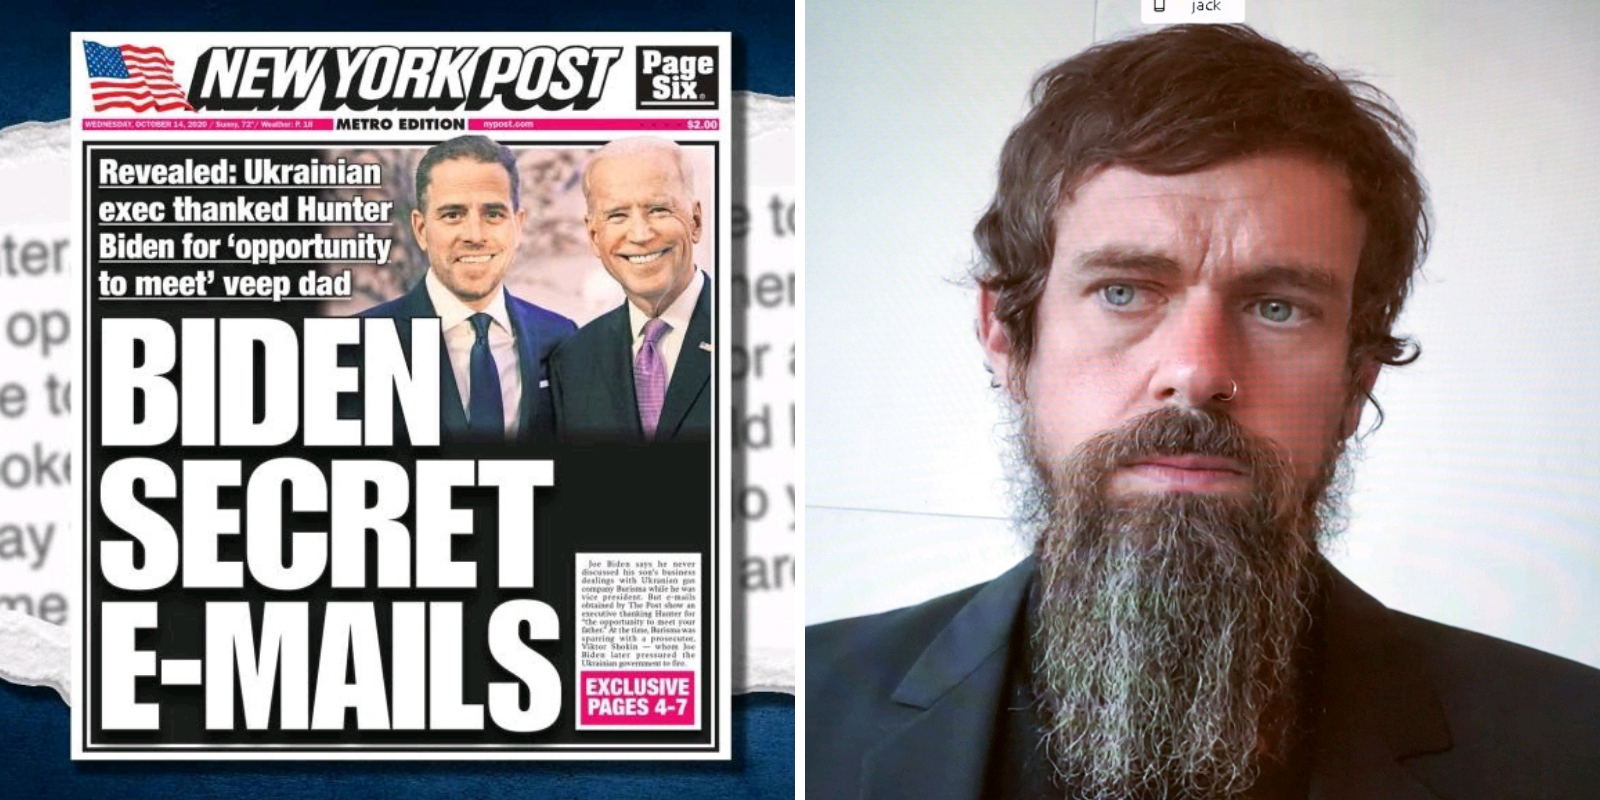 BREAKING: New York Post account restored by Twitter in major victory for free speech